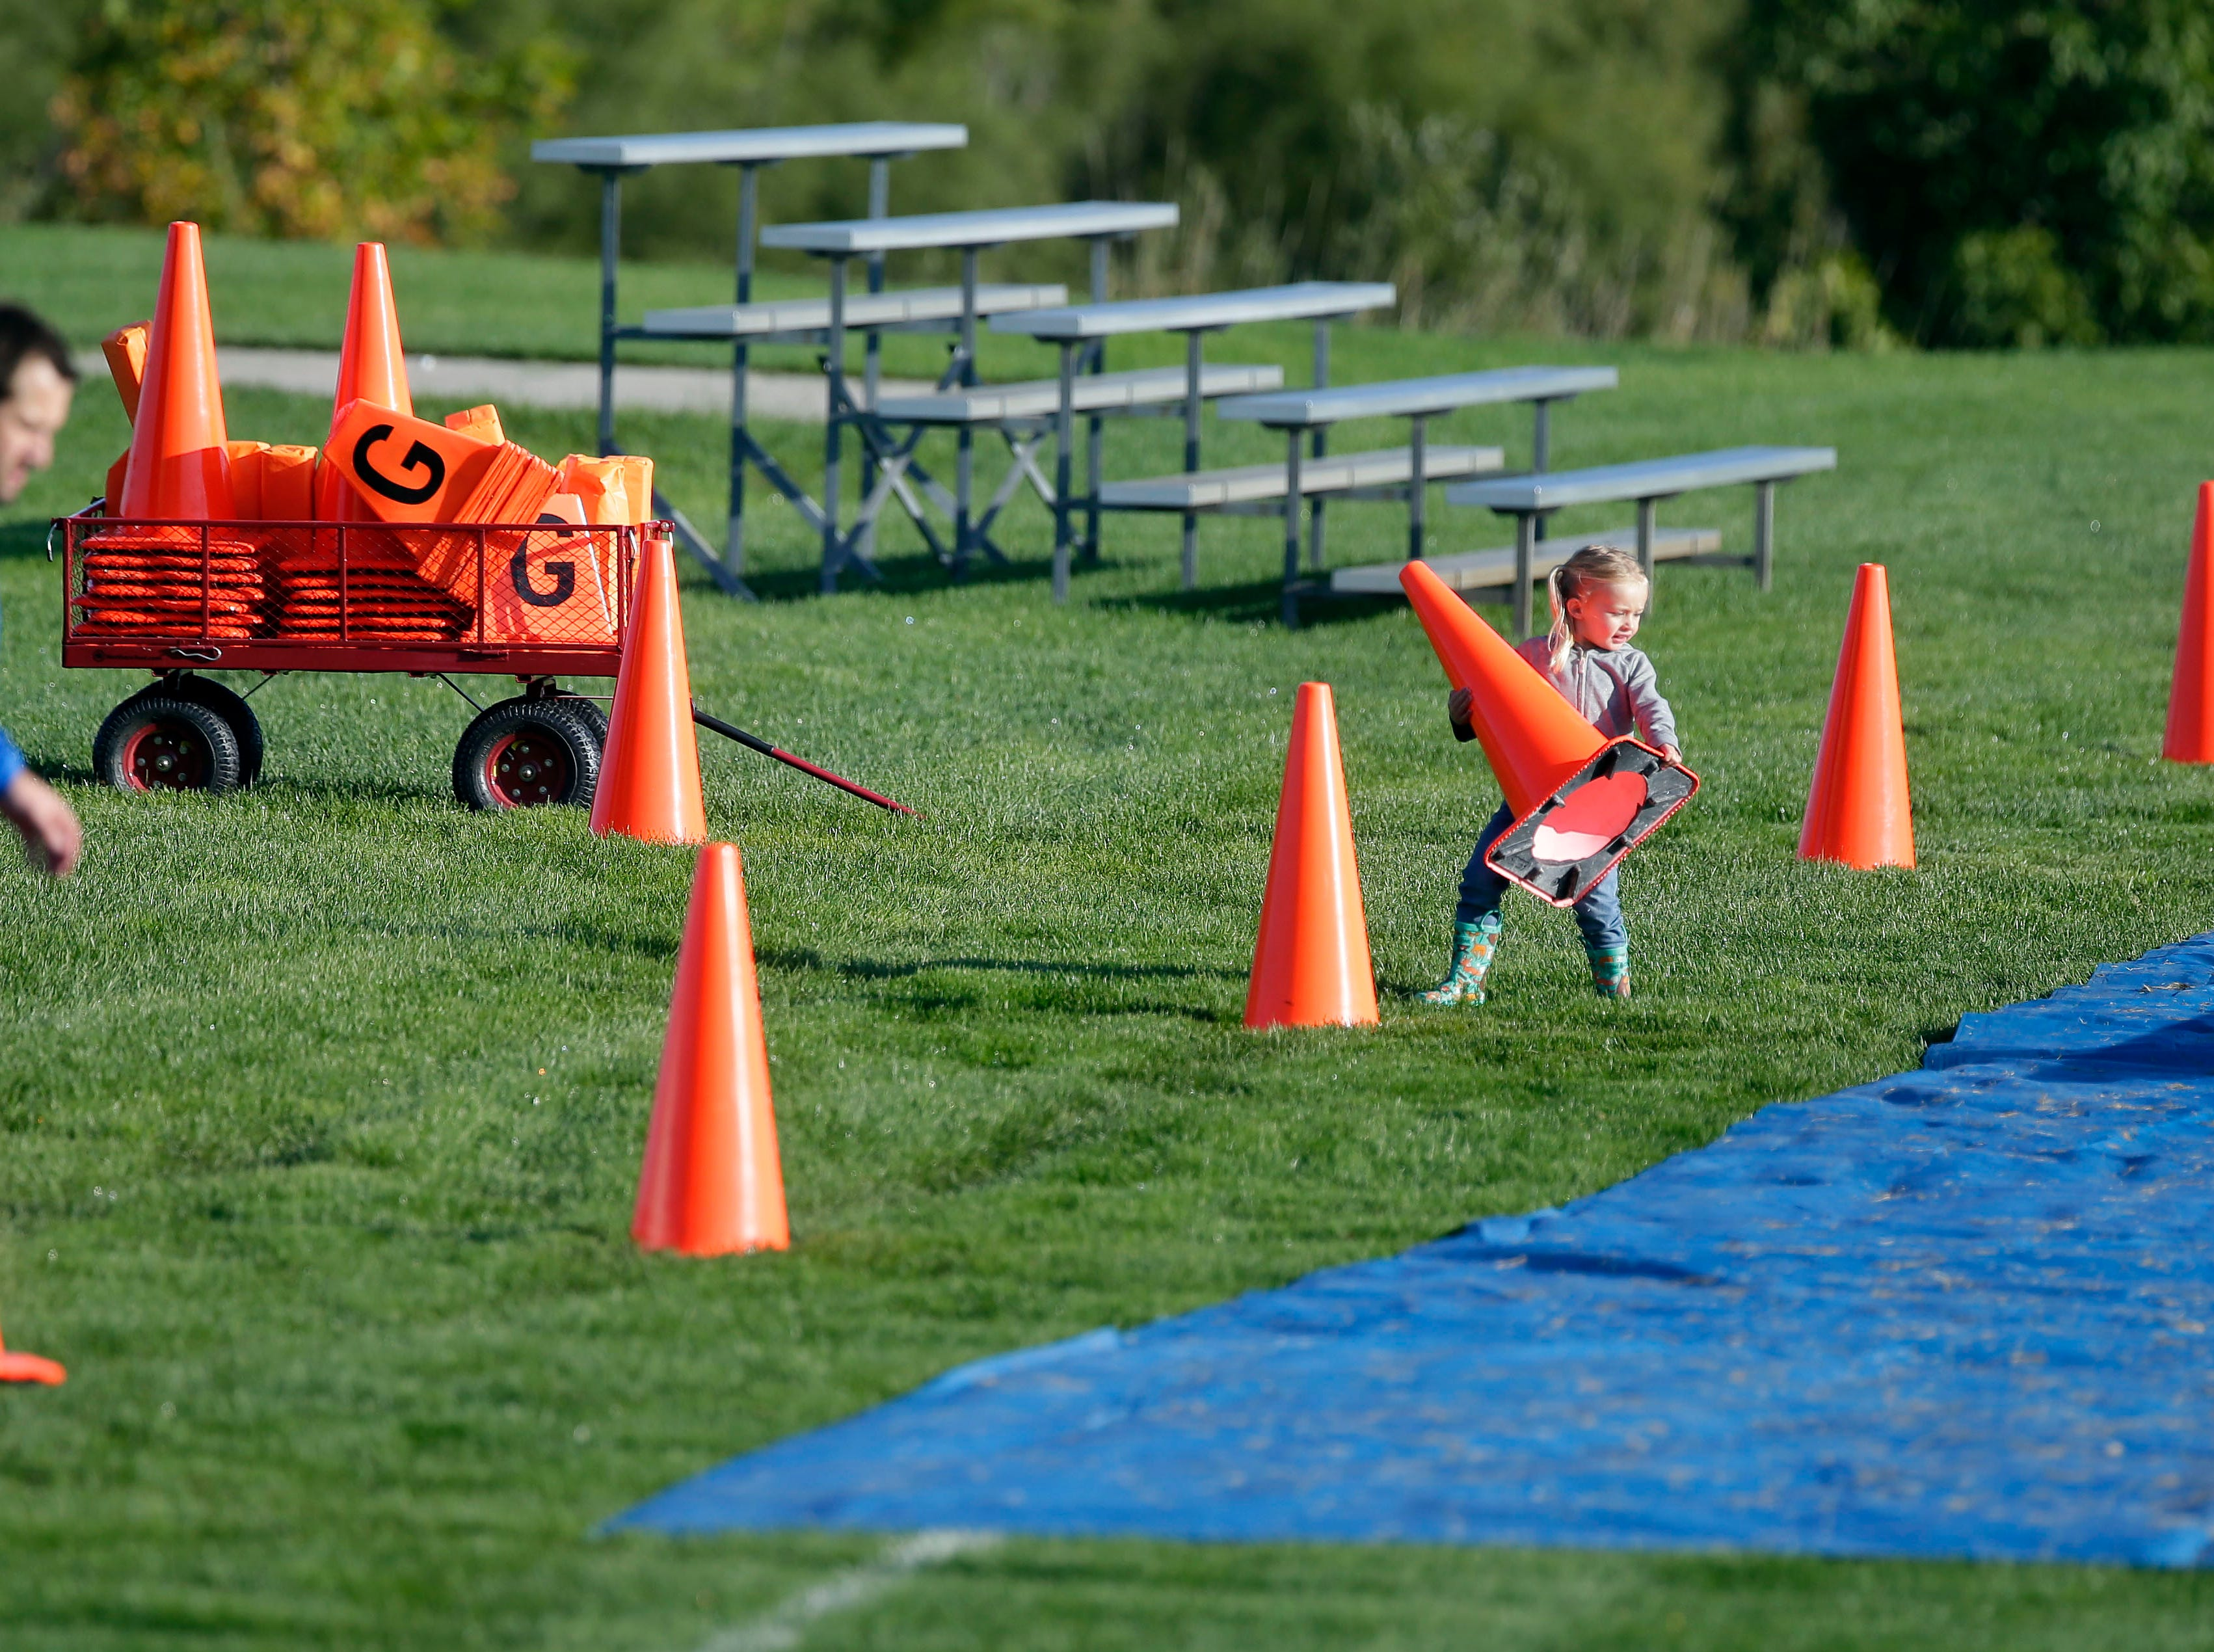 Sienna Springer helps her father, Will, a board member of Fox Valley Pop Warner Football, get cones in place before the first game of the season gets underway Saturday, September 8, 2018, at Plamann Park in Grand Chute, Wis.Ron Page/USA TODAY NETWORK-Wisconsin